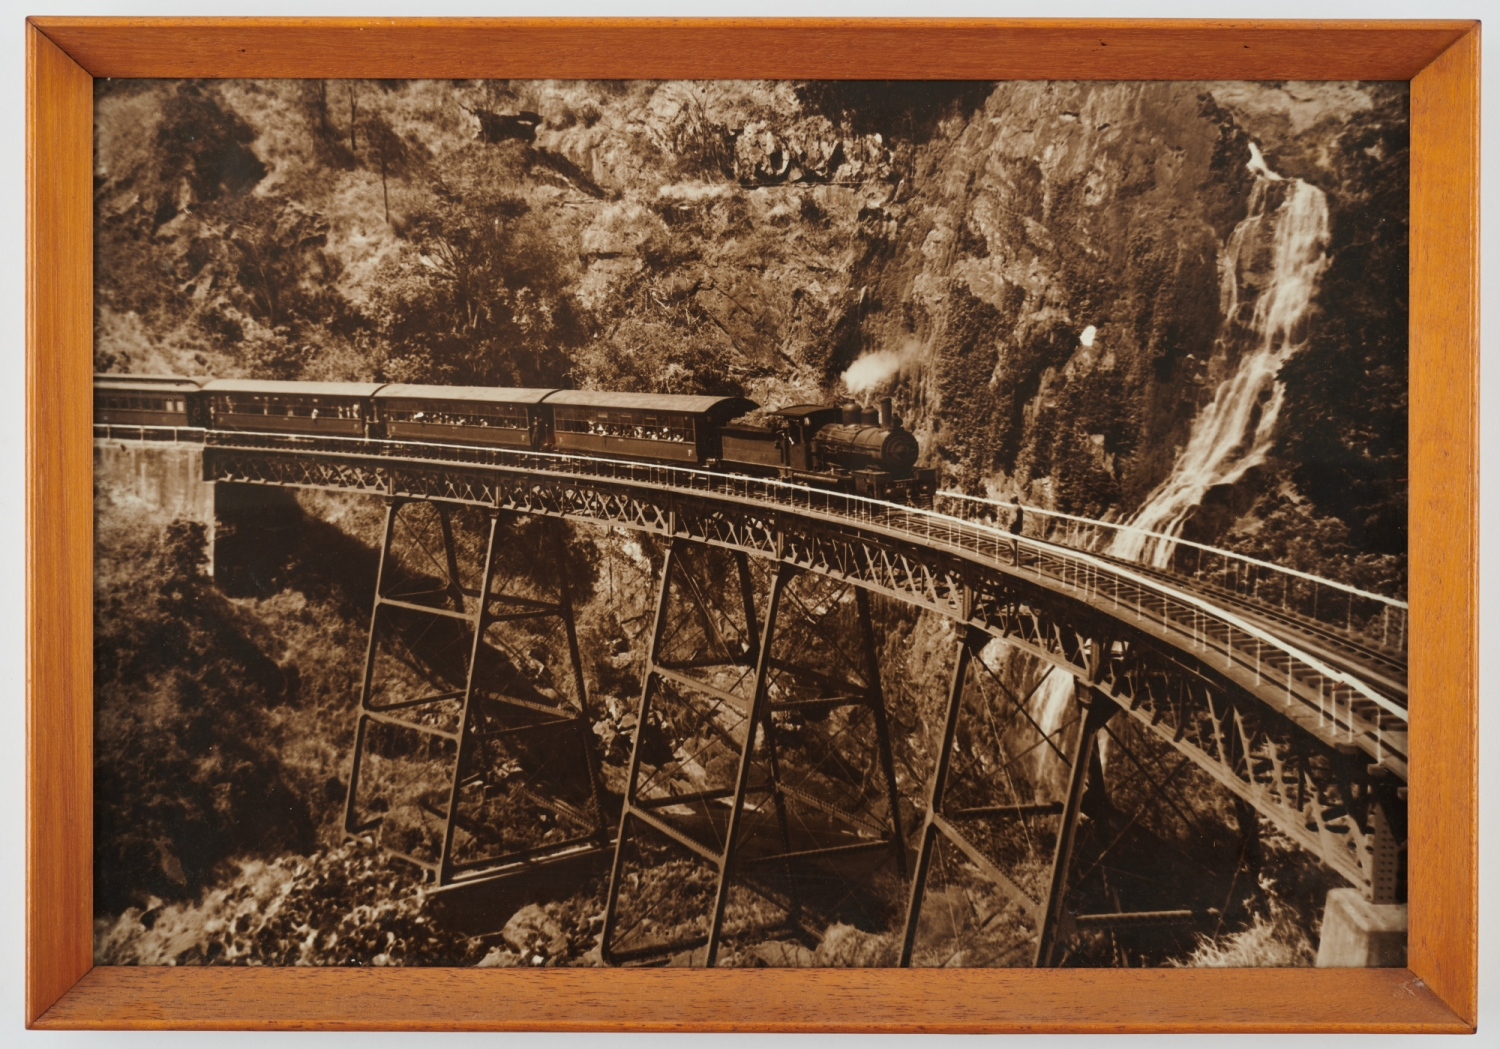 Black and white photoof railway line with steam train in brown frame.